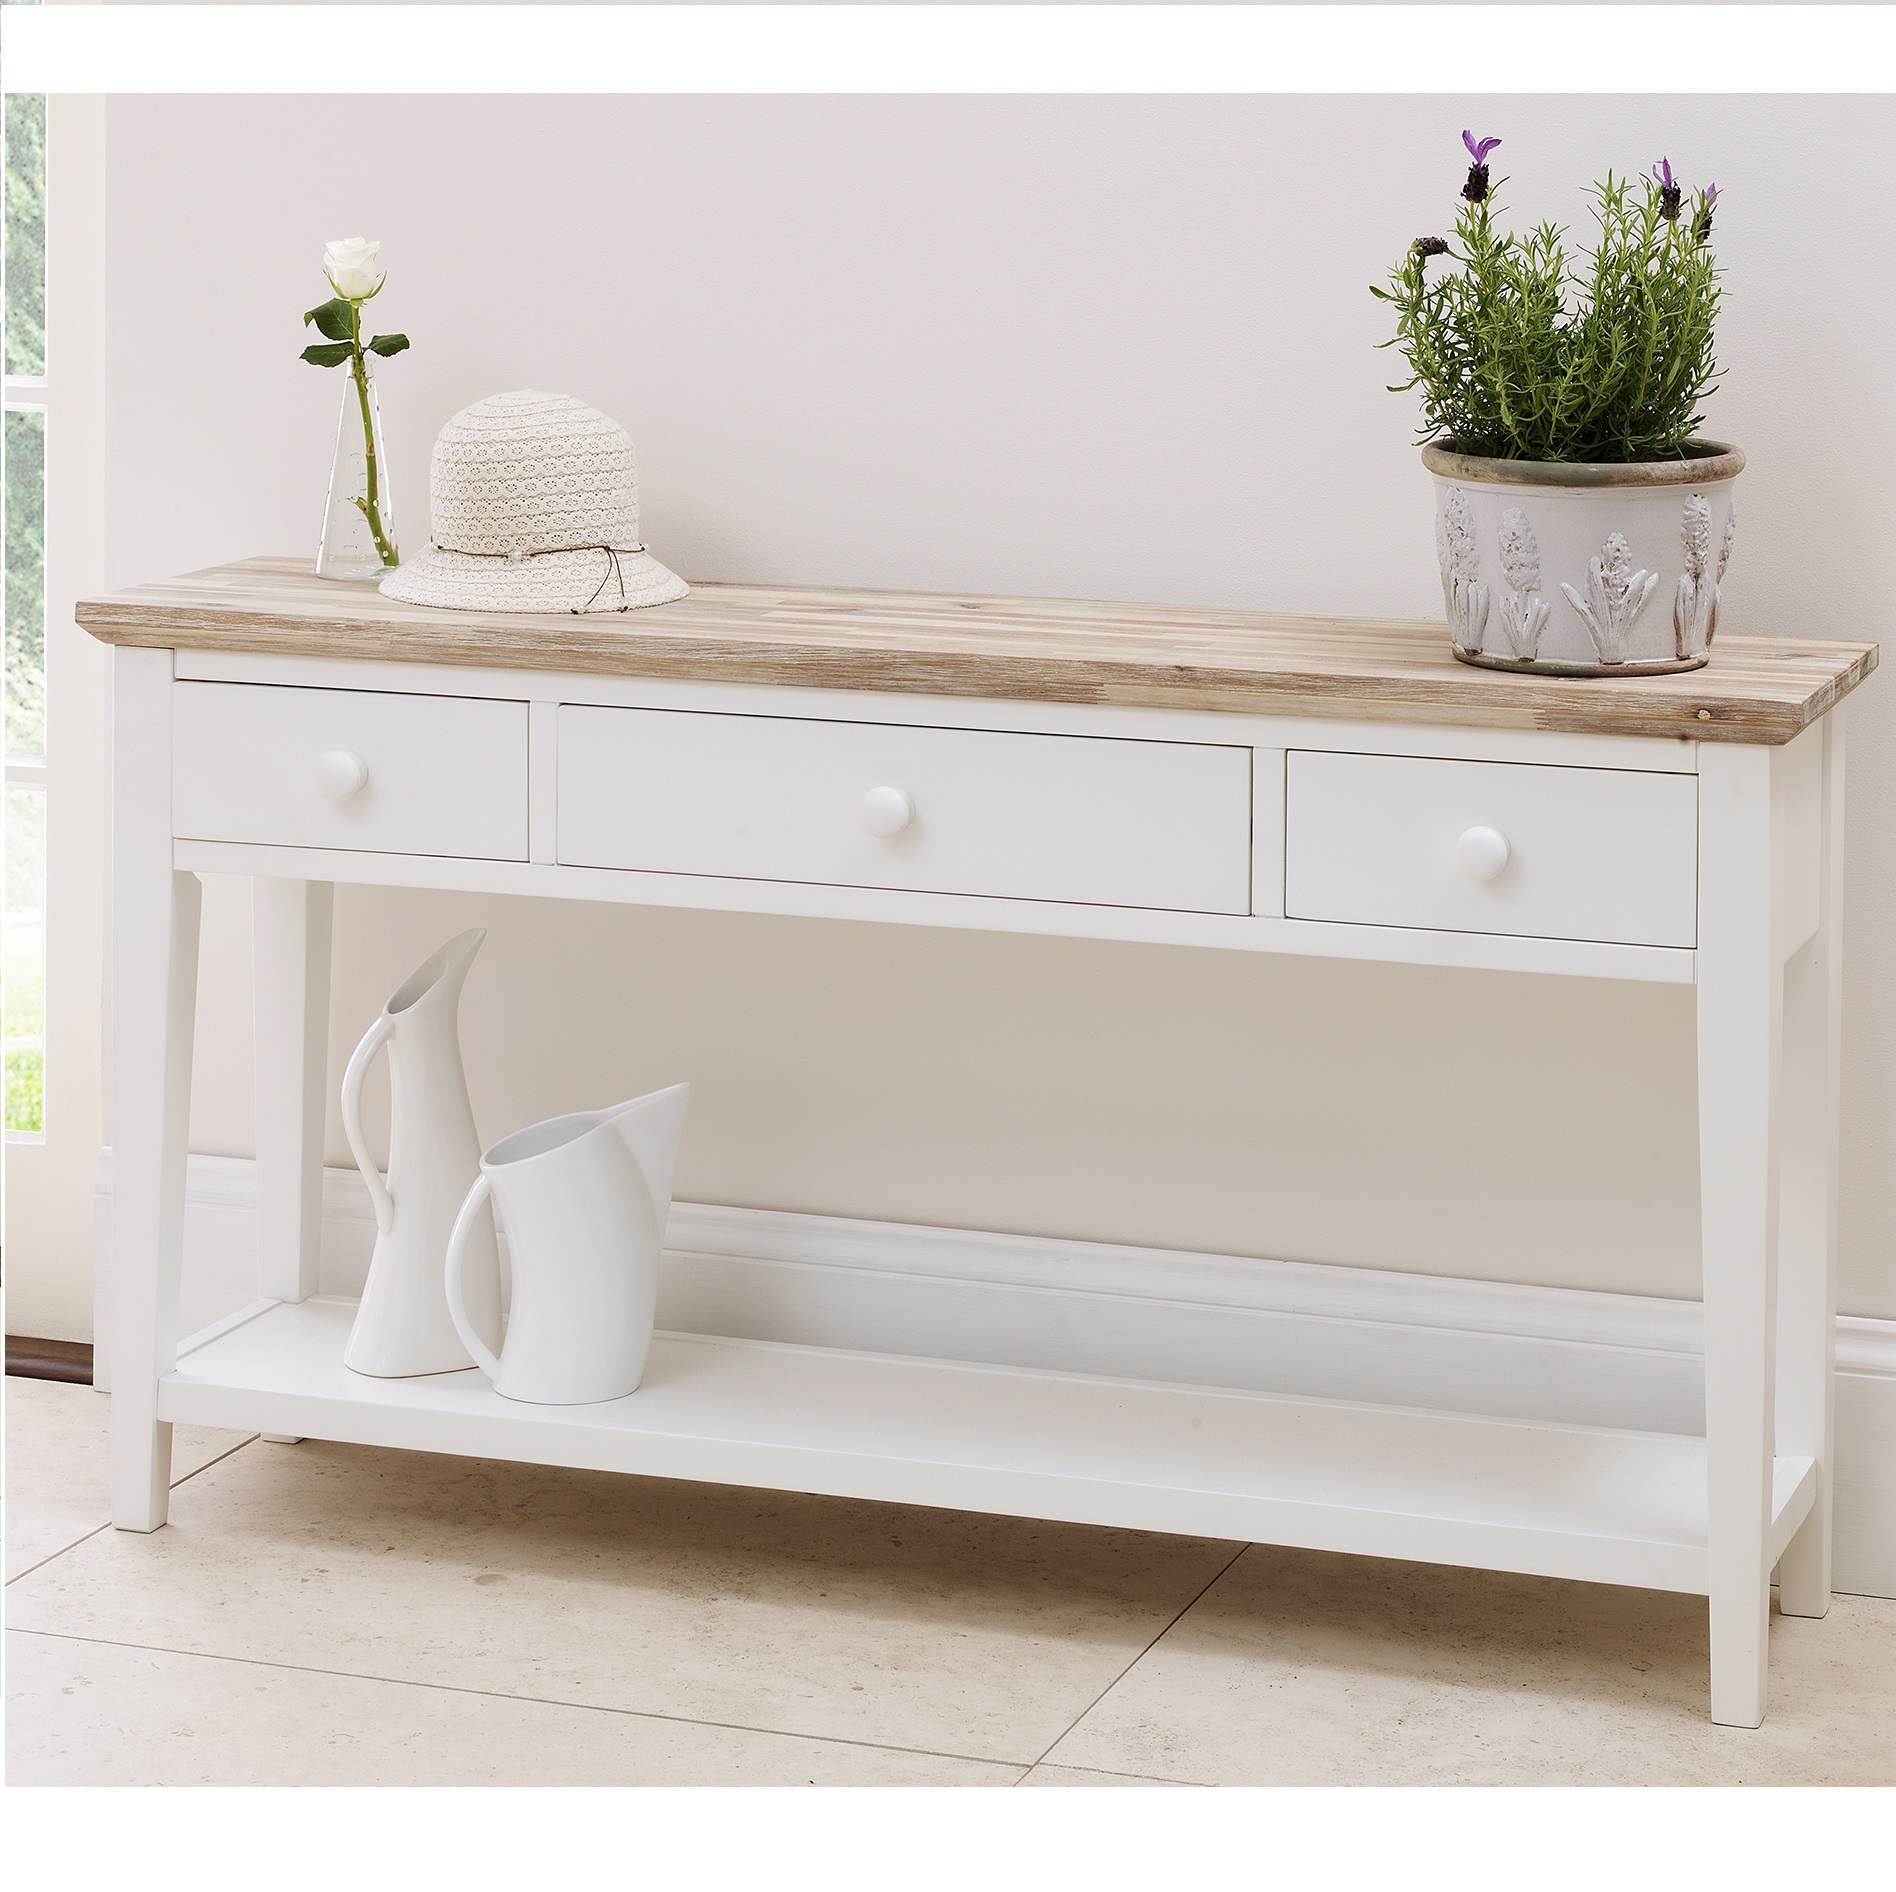 Console table decor ikea kingsley bate classic console table wayfair com online home store for Home decor stores utah county